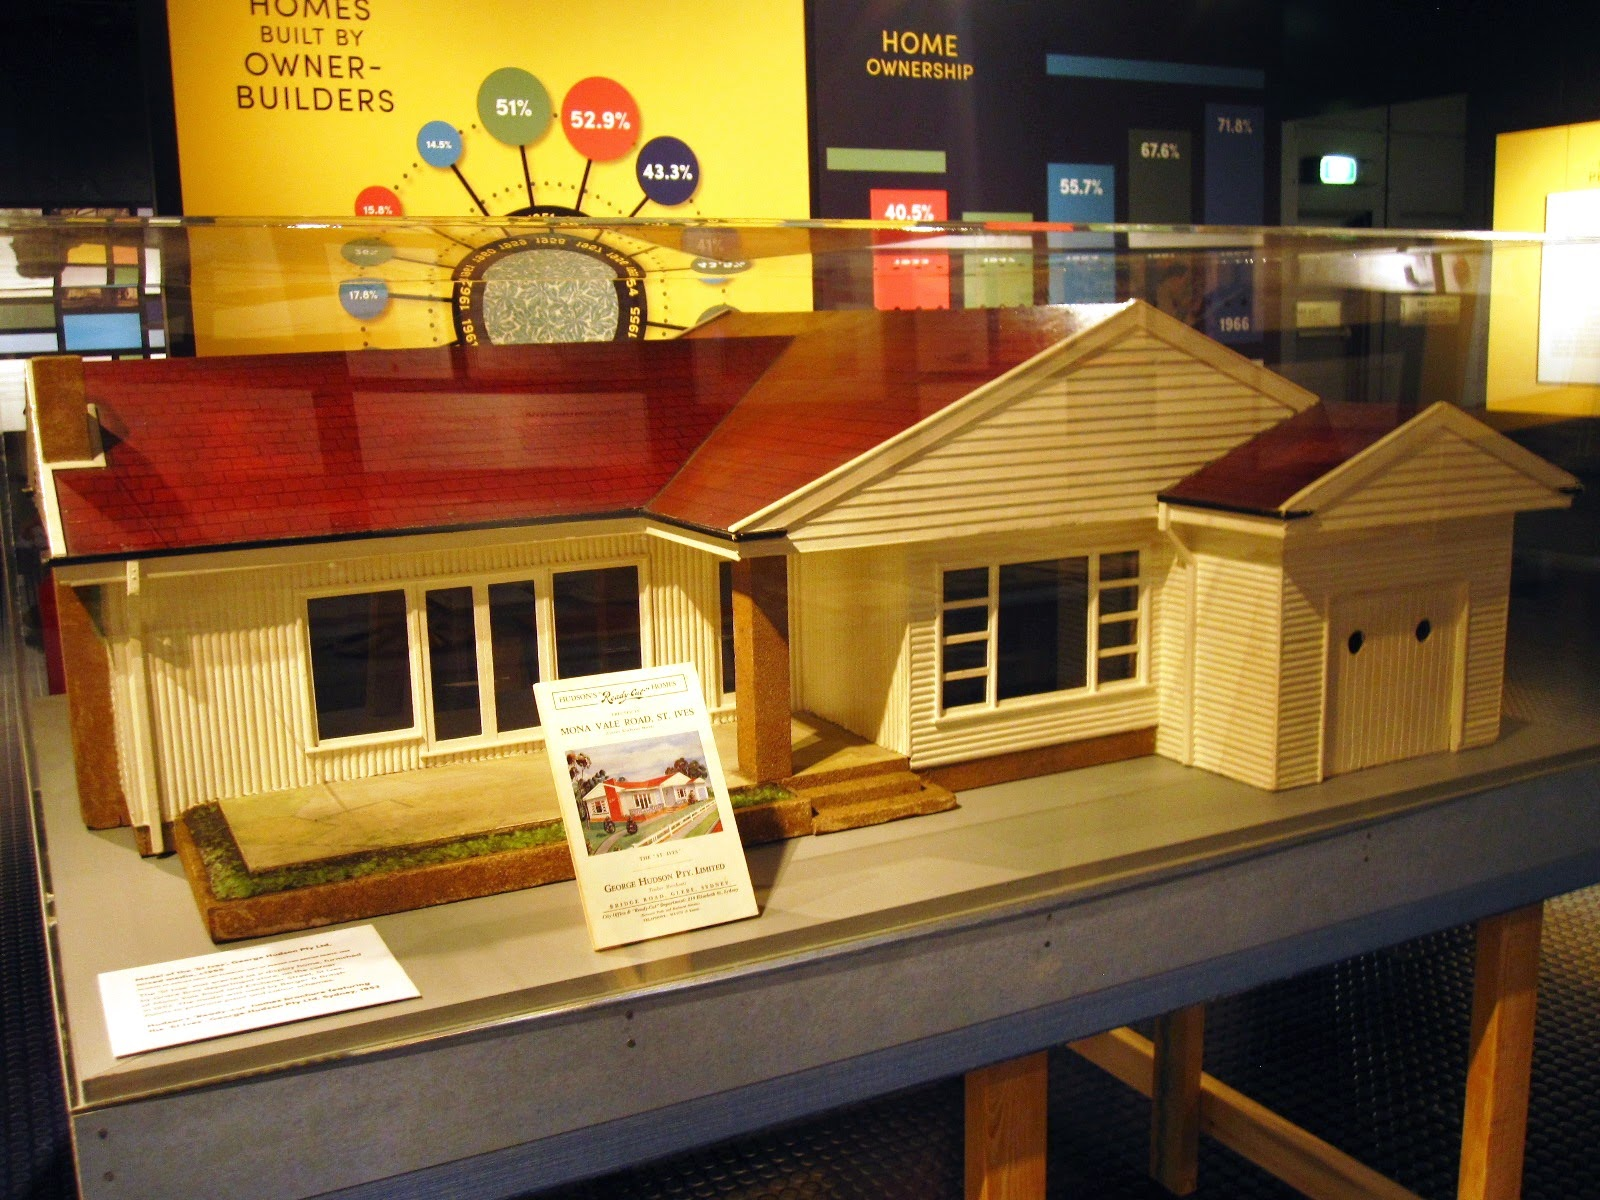 Model 'St Ives' house in the exhibition 'Dream Home Small Home'